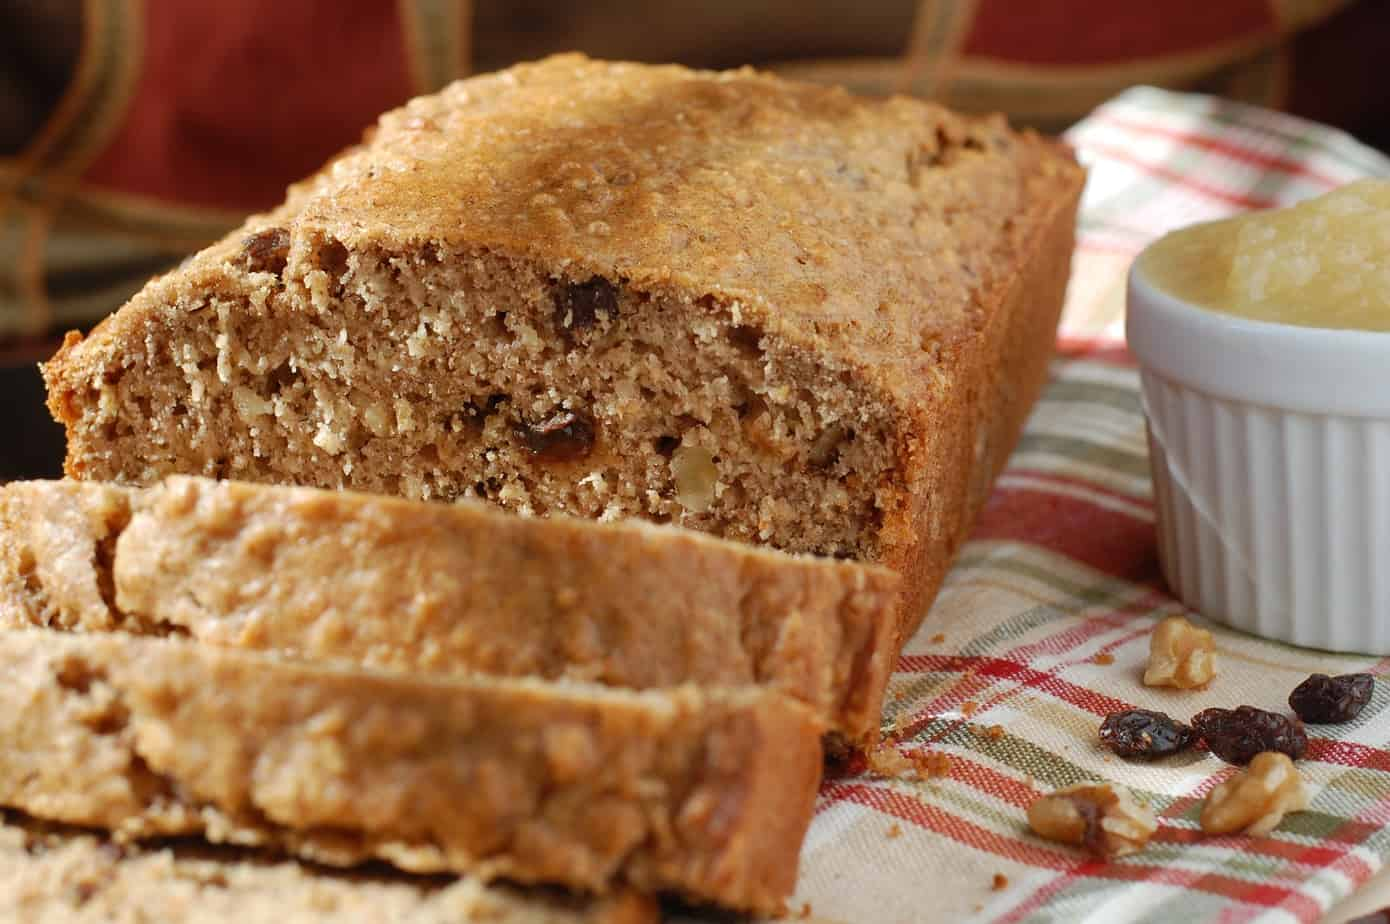 Loaf of healthy walnut raisin quick bread.